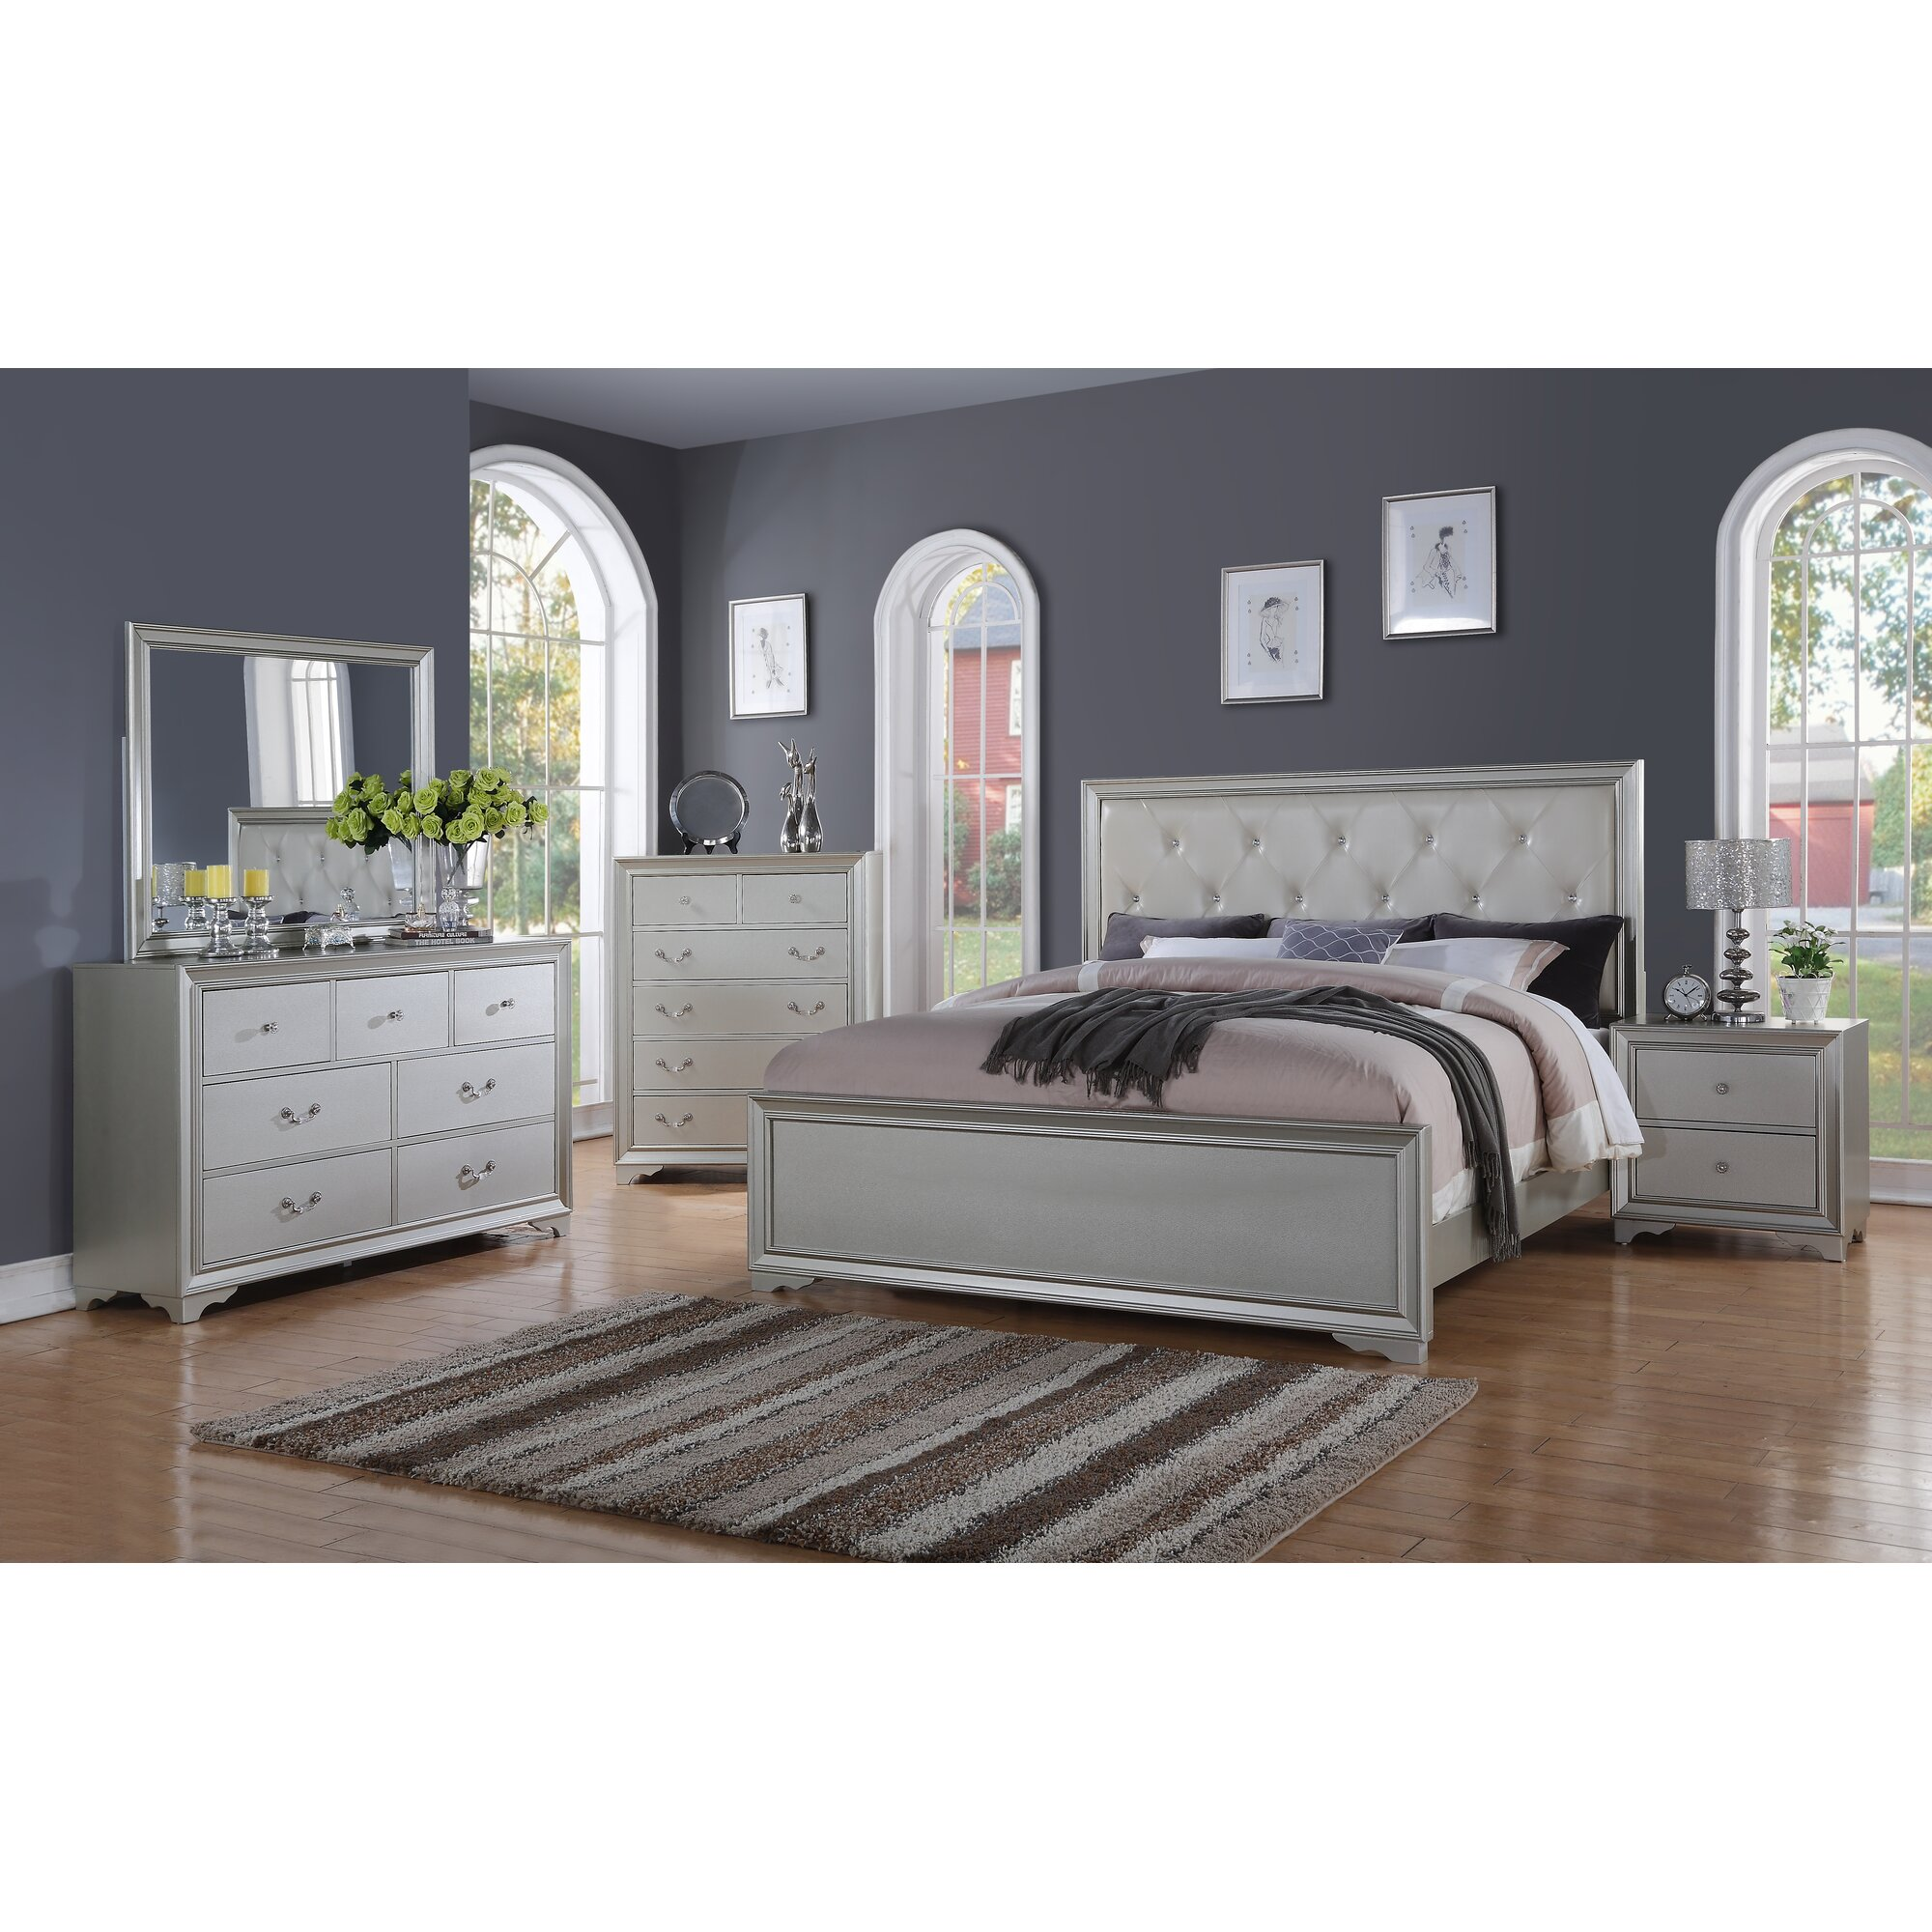 5 piece bedroom set queen